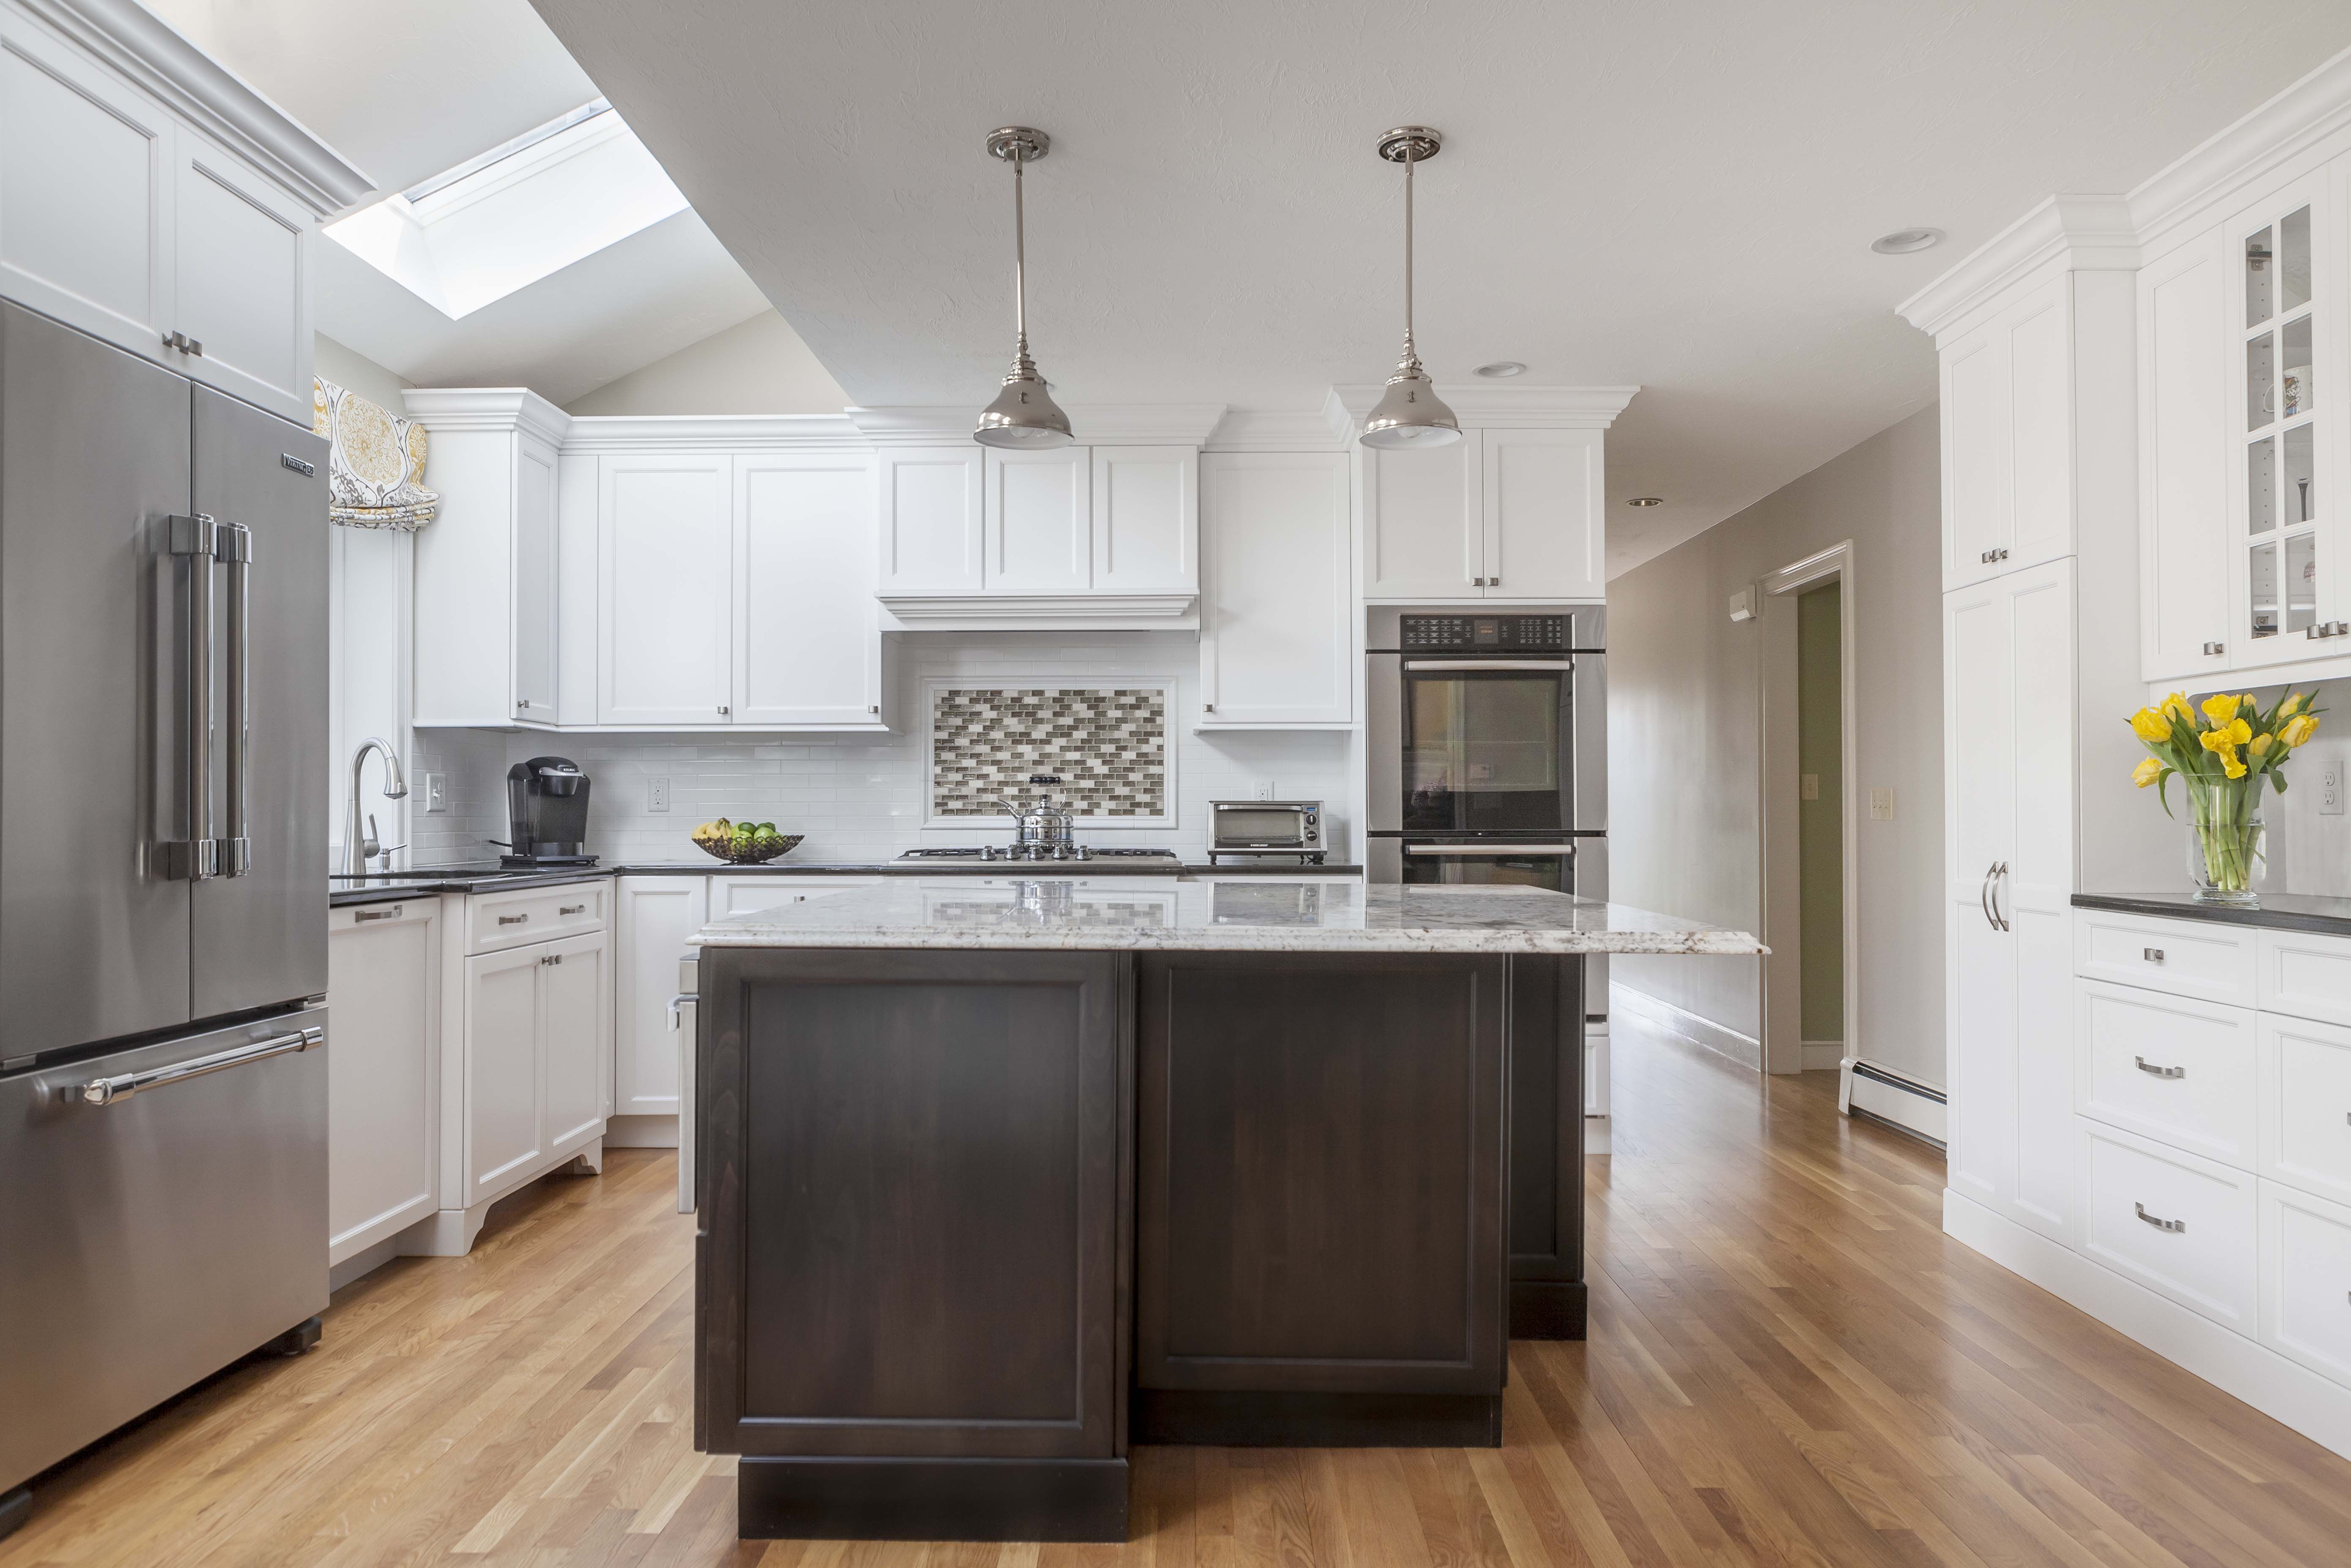 Cover Winslow Paint Grade Door In Snowdrift The Cabinetry Ma Photographer Daniela Gonca White Kitchen Design Kitchen Renovation Kitchen And Bath Design